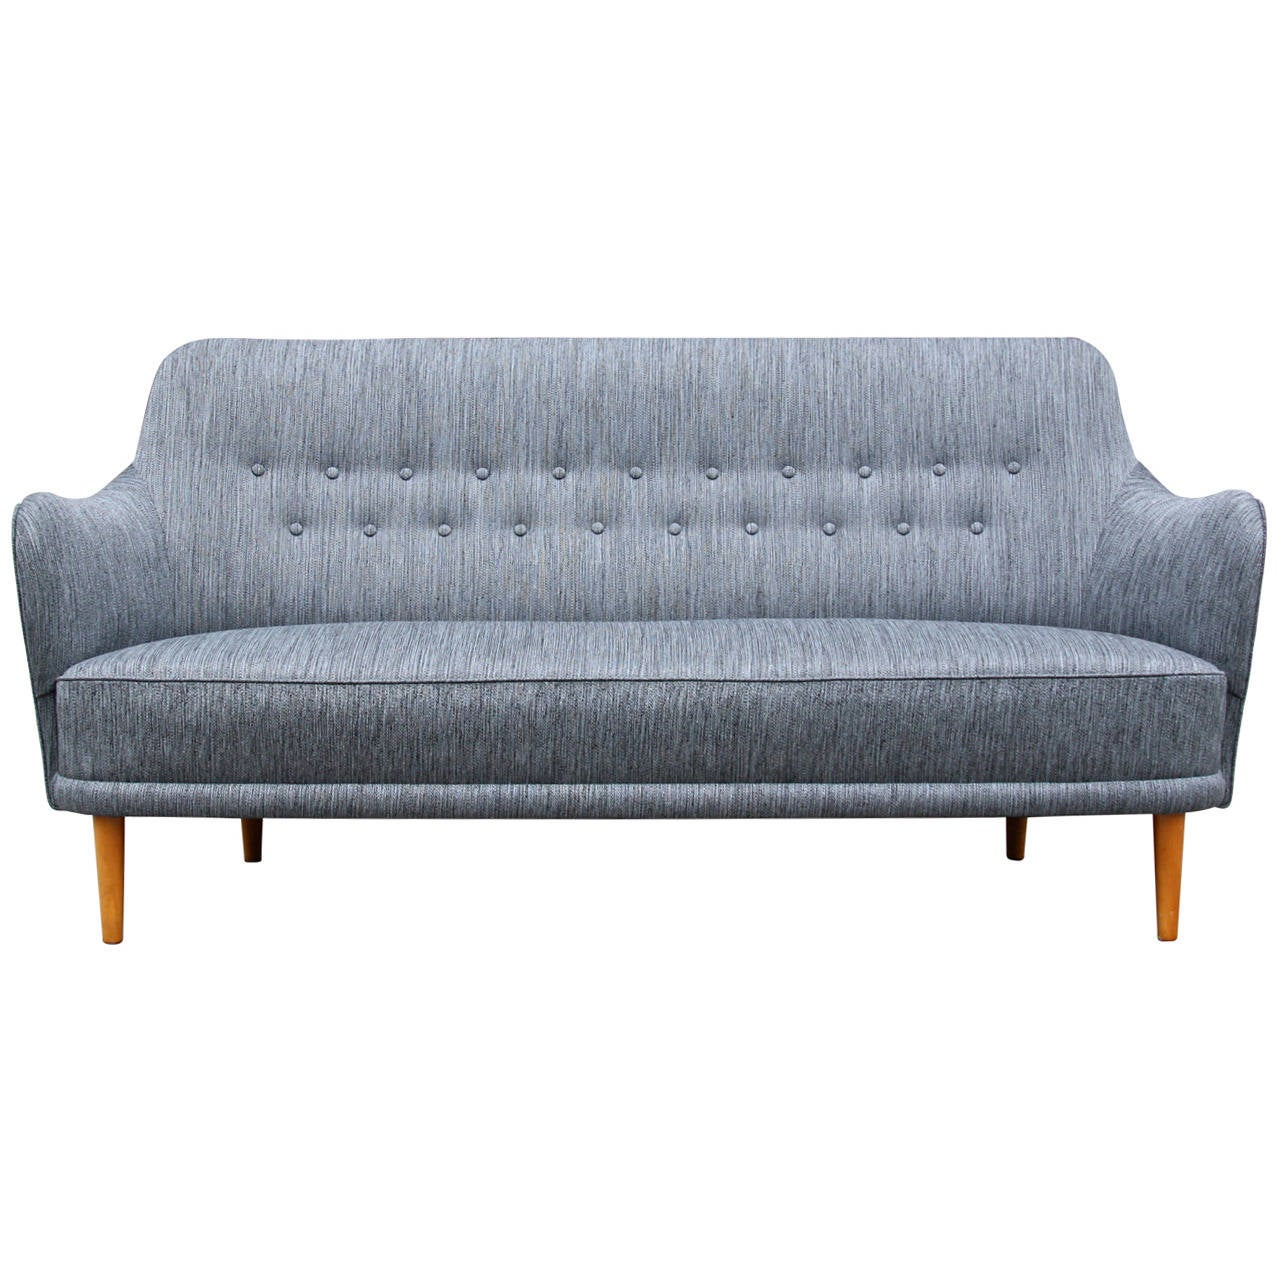 Carl malmsten two seat sofa at 1stdibs Carl malmsten sofa